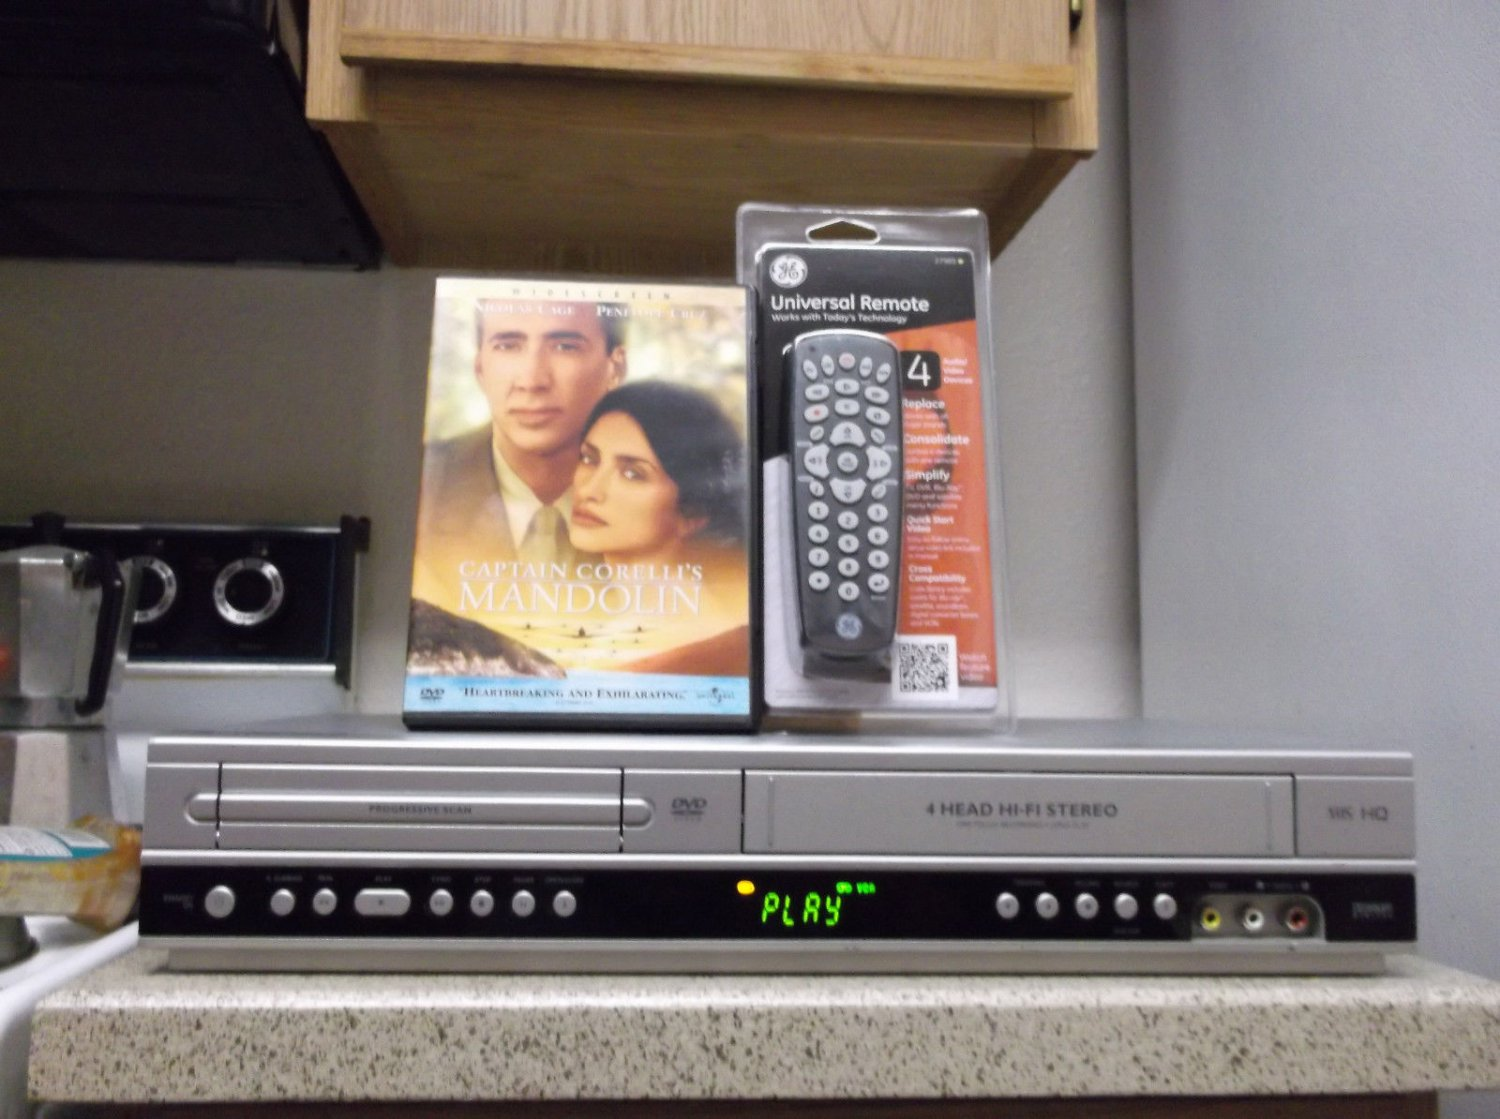 Refurbished Philips DLP3340U VCR/DVD Combo Player With 4-1 Remote & 1 DVD Movie